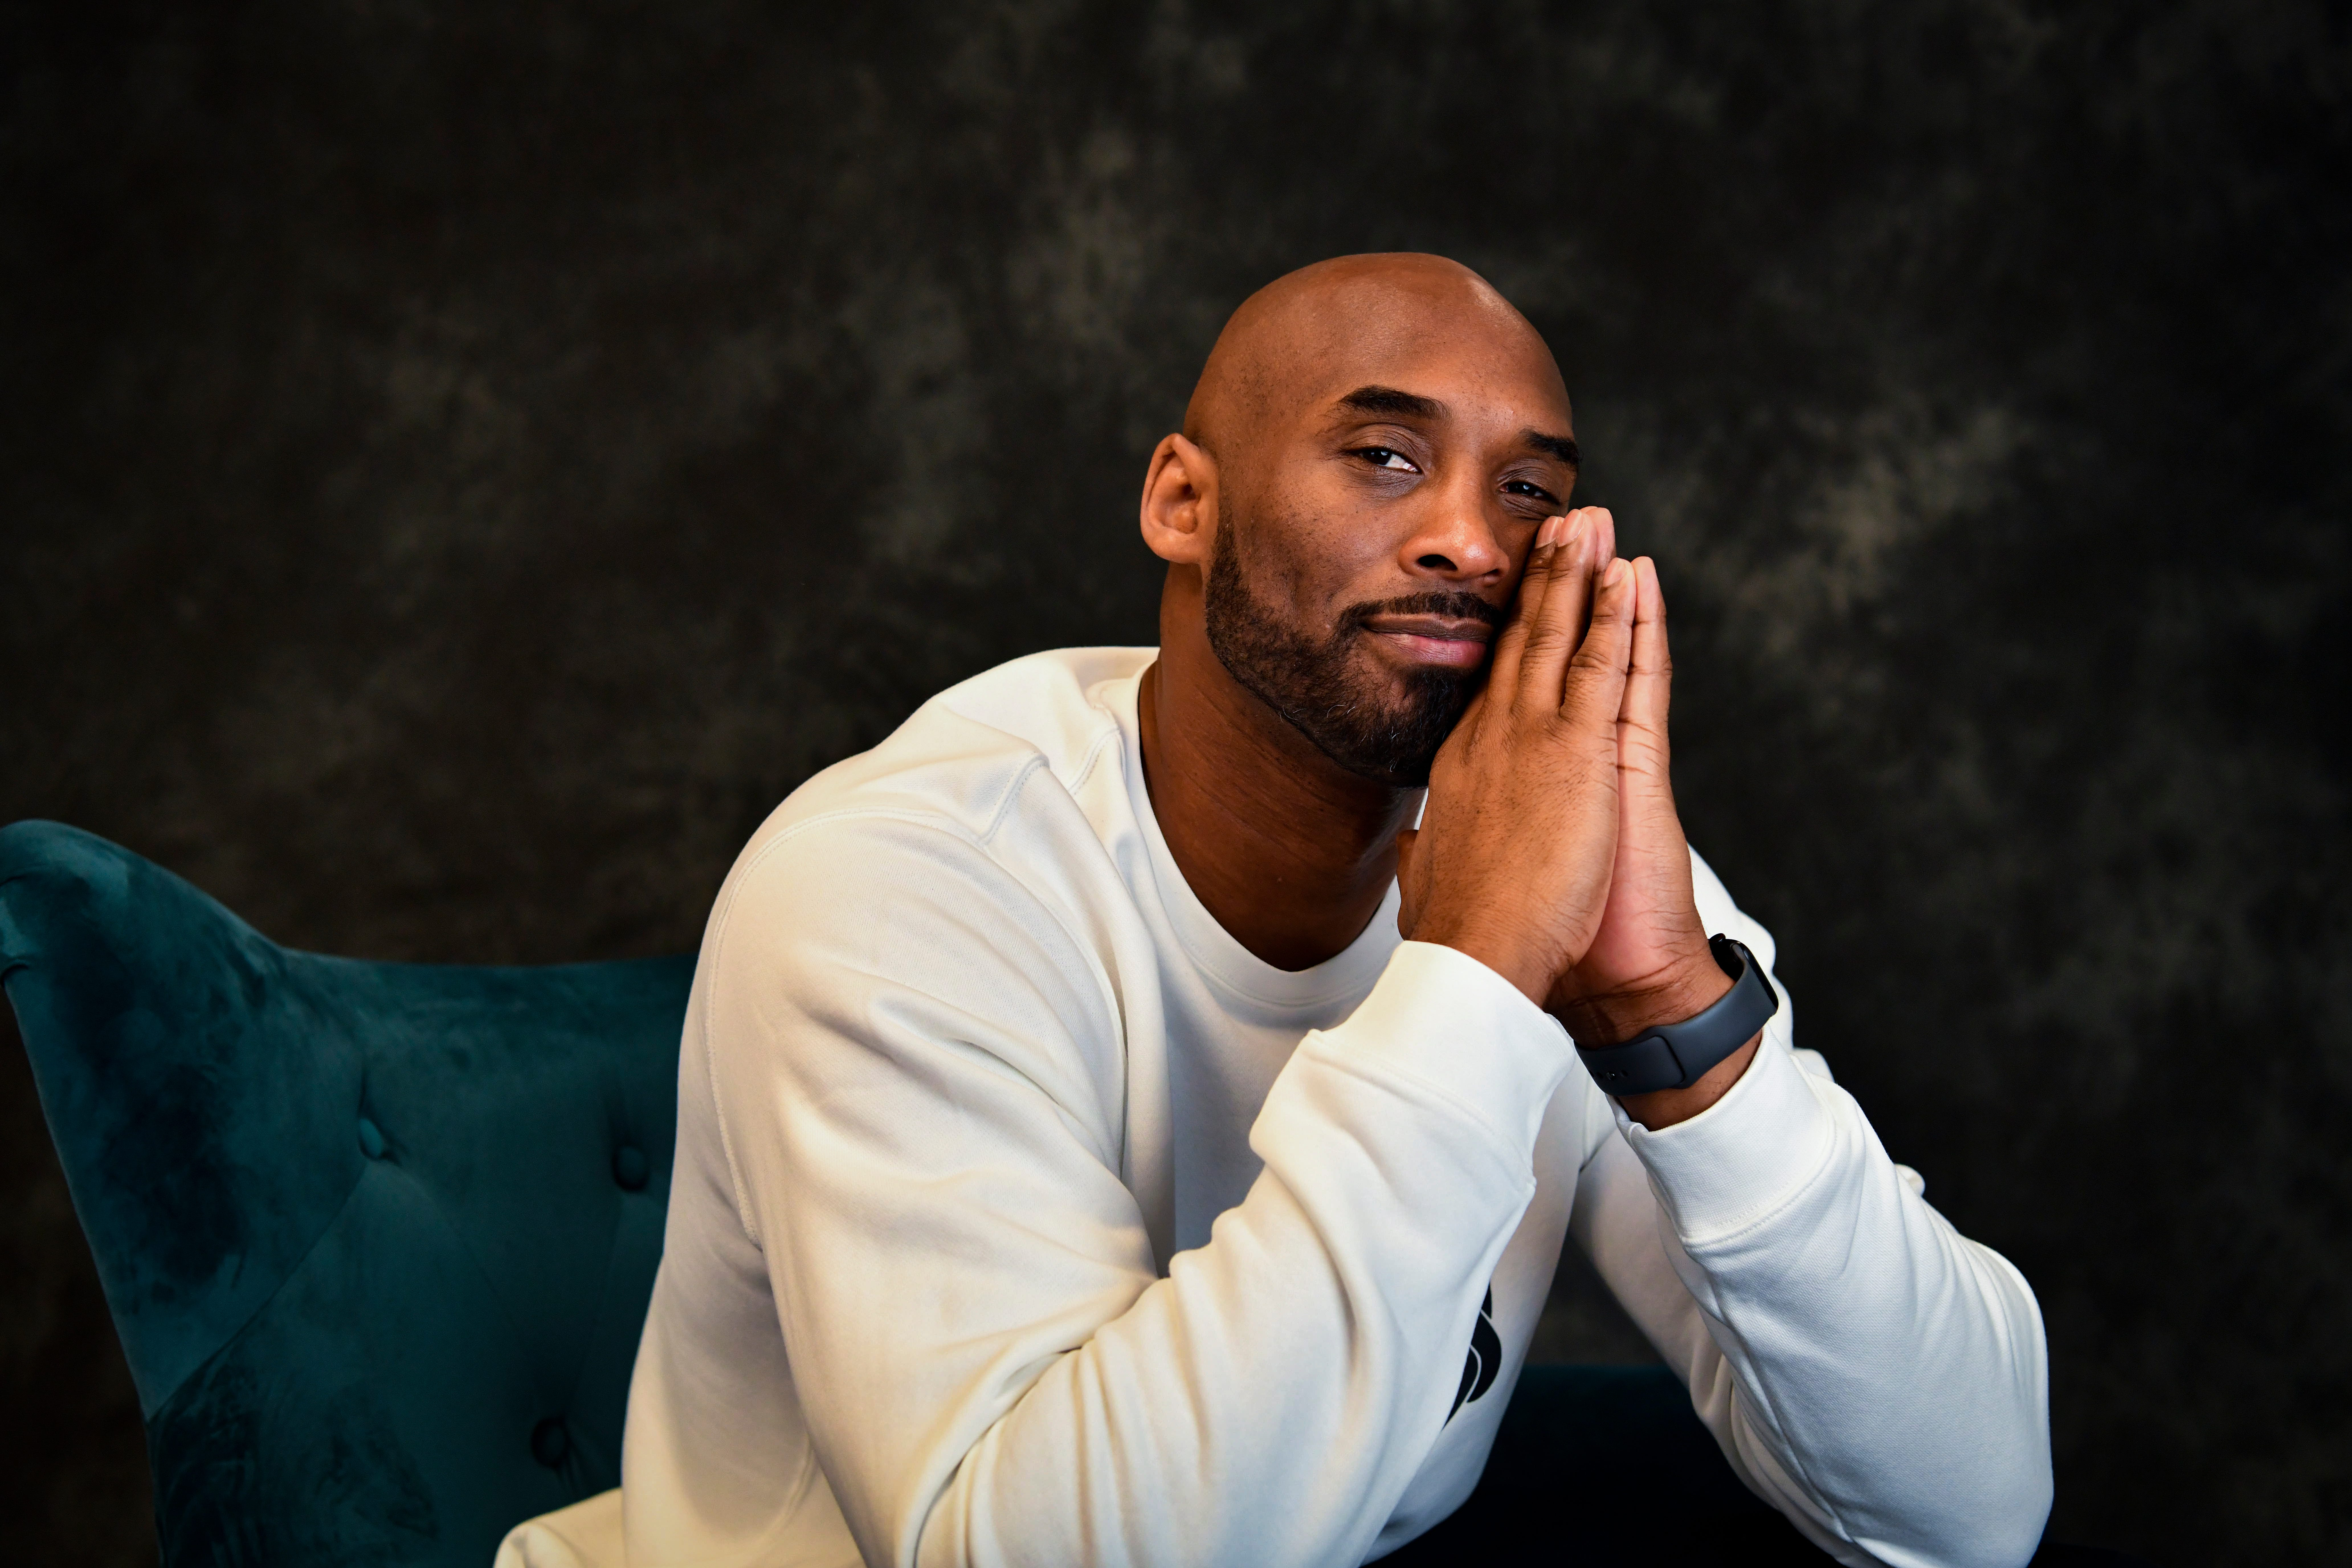 Final interview with Kobe Bryant offered window into NBA legend's motivation to be memorable